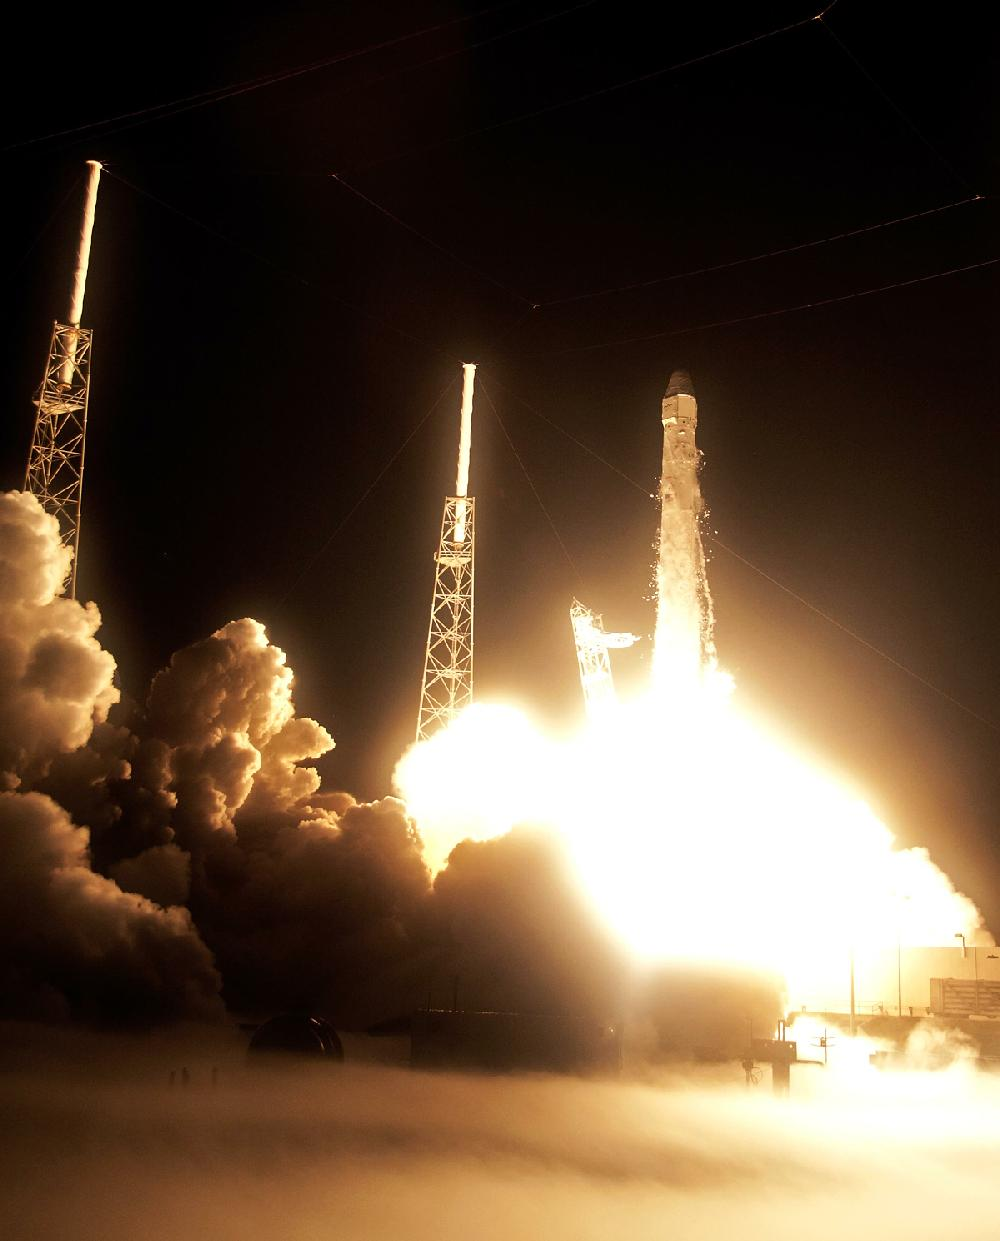 After delay, private rocket lifts off